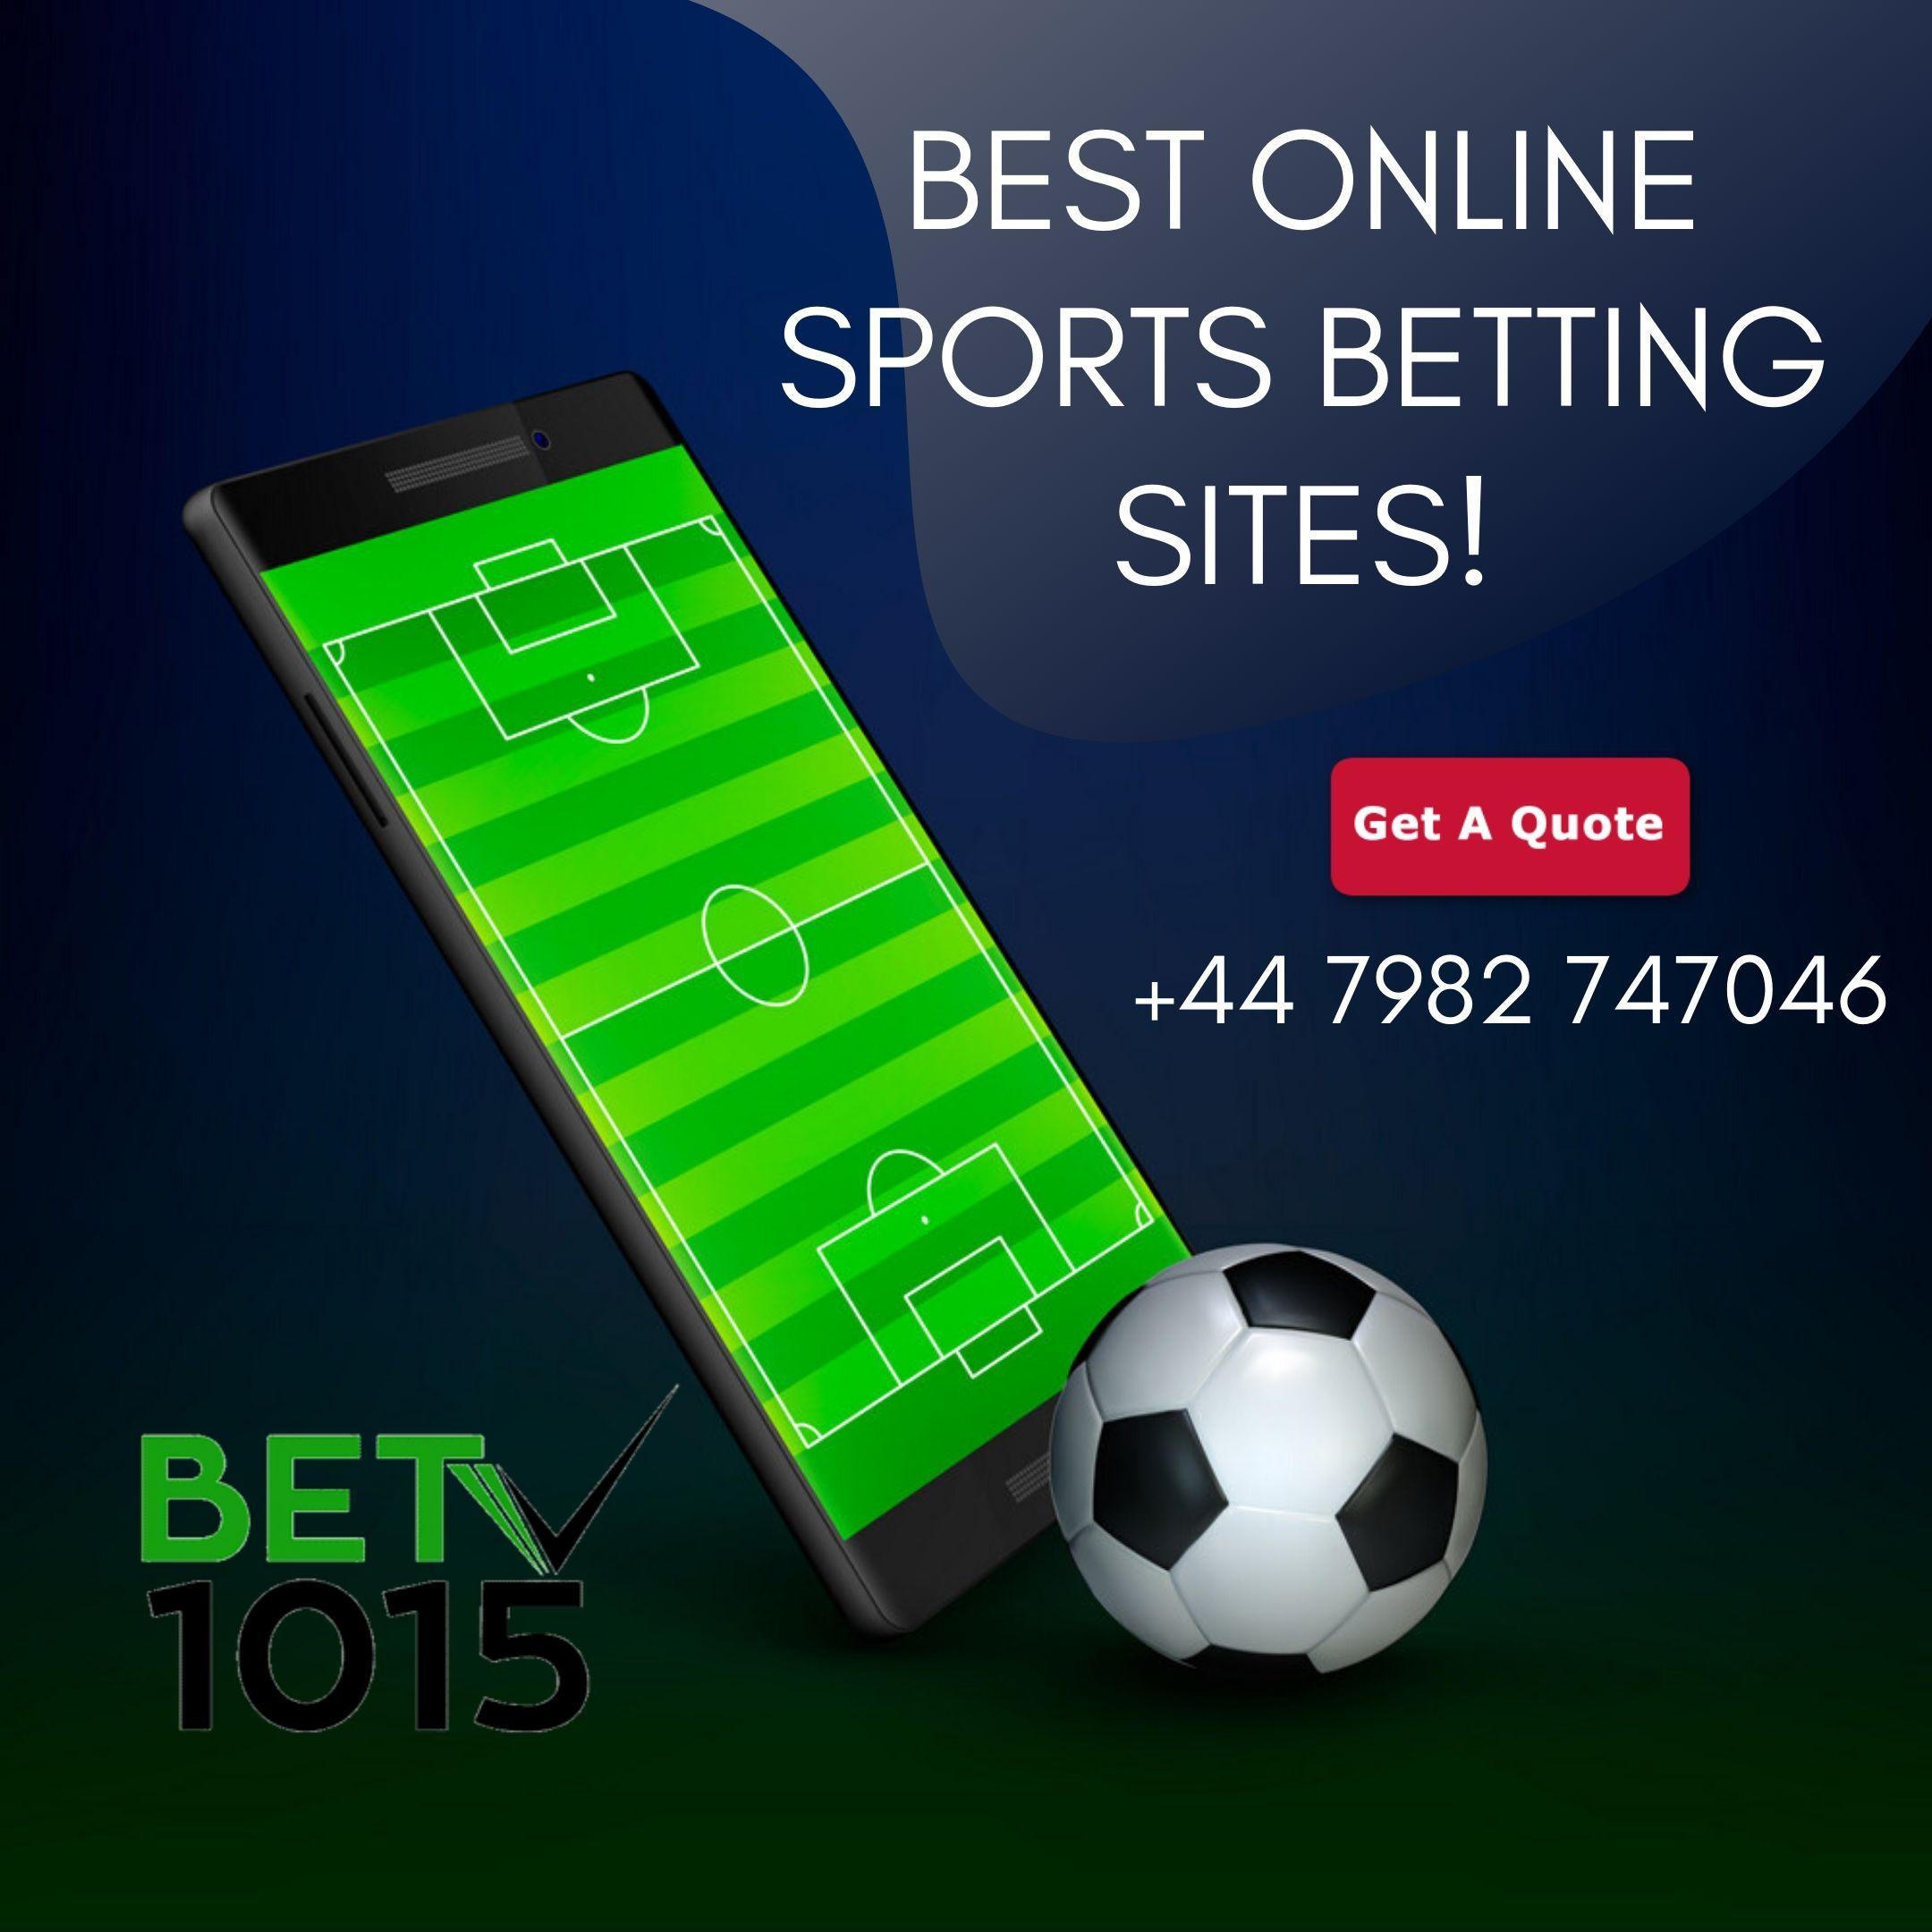 Best online betting sites soccer quotes tag outlet store nicosia betting